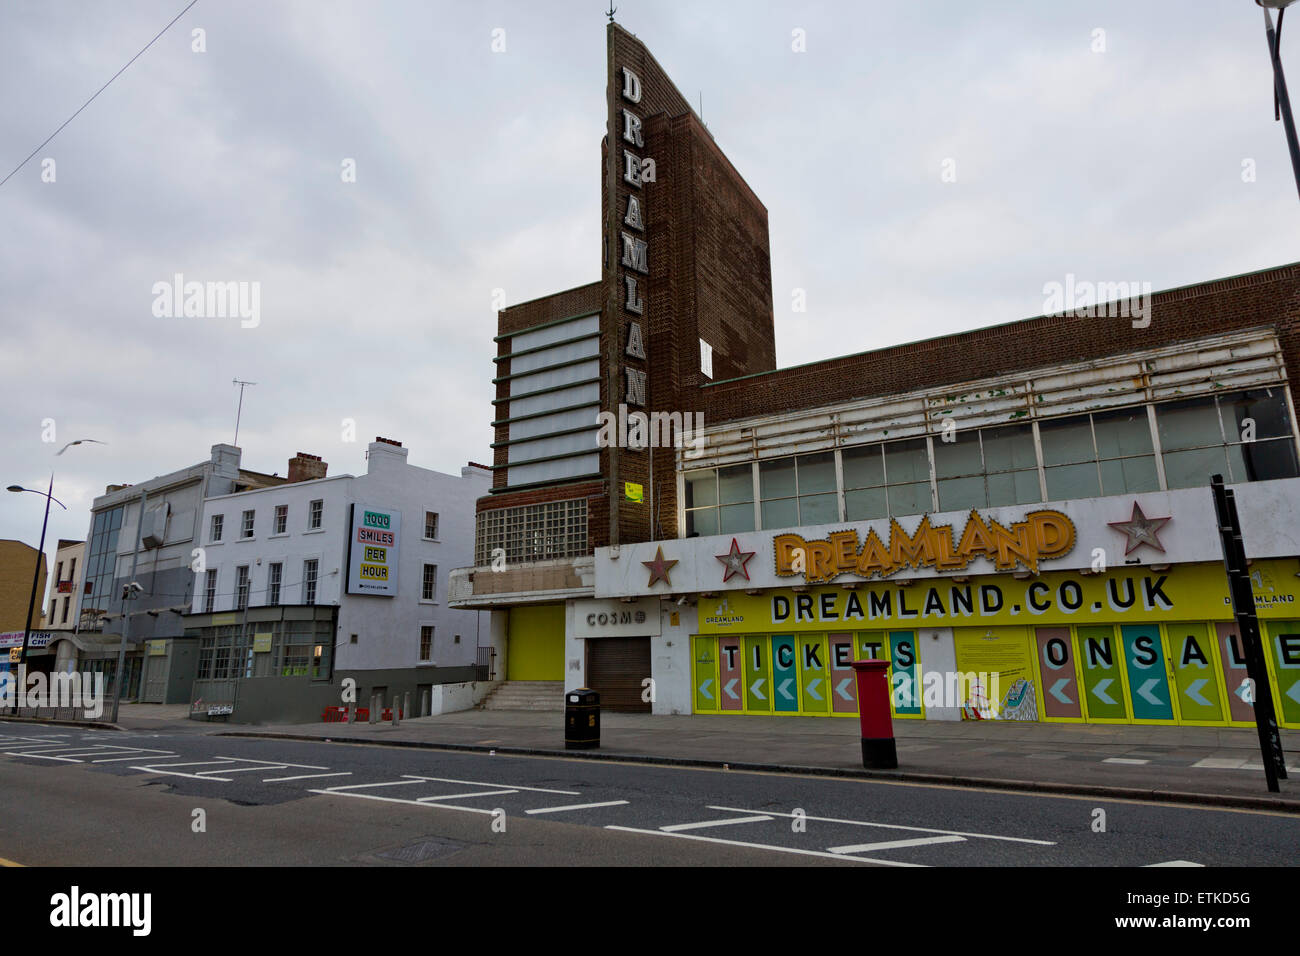 Margate seafronts Dreamland complex - Stock Image